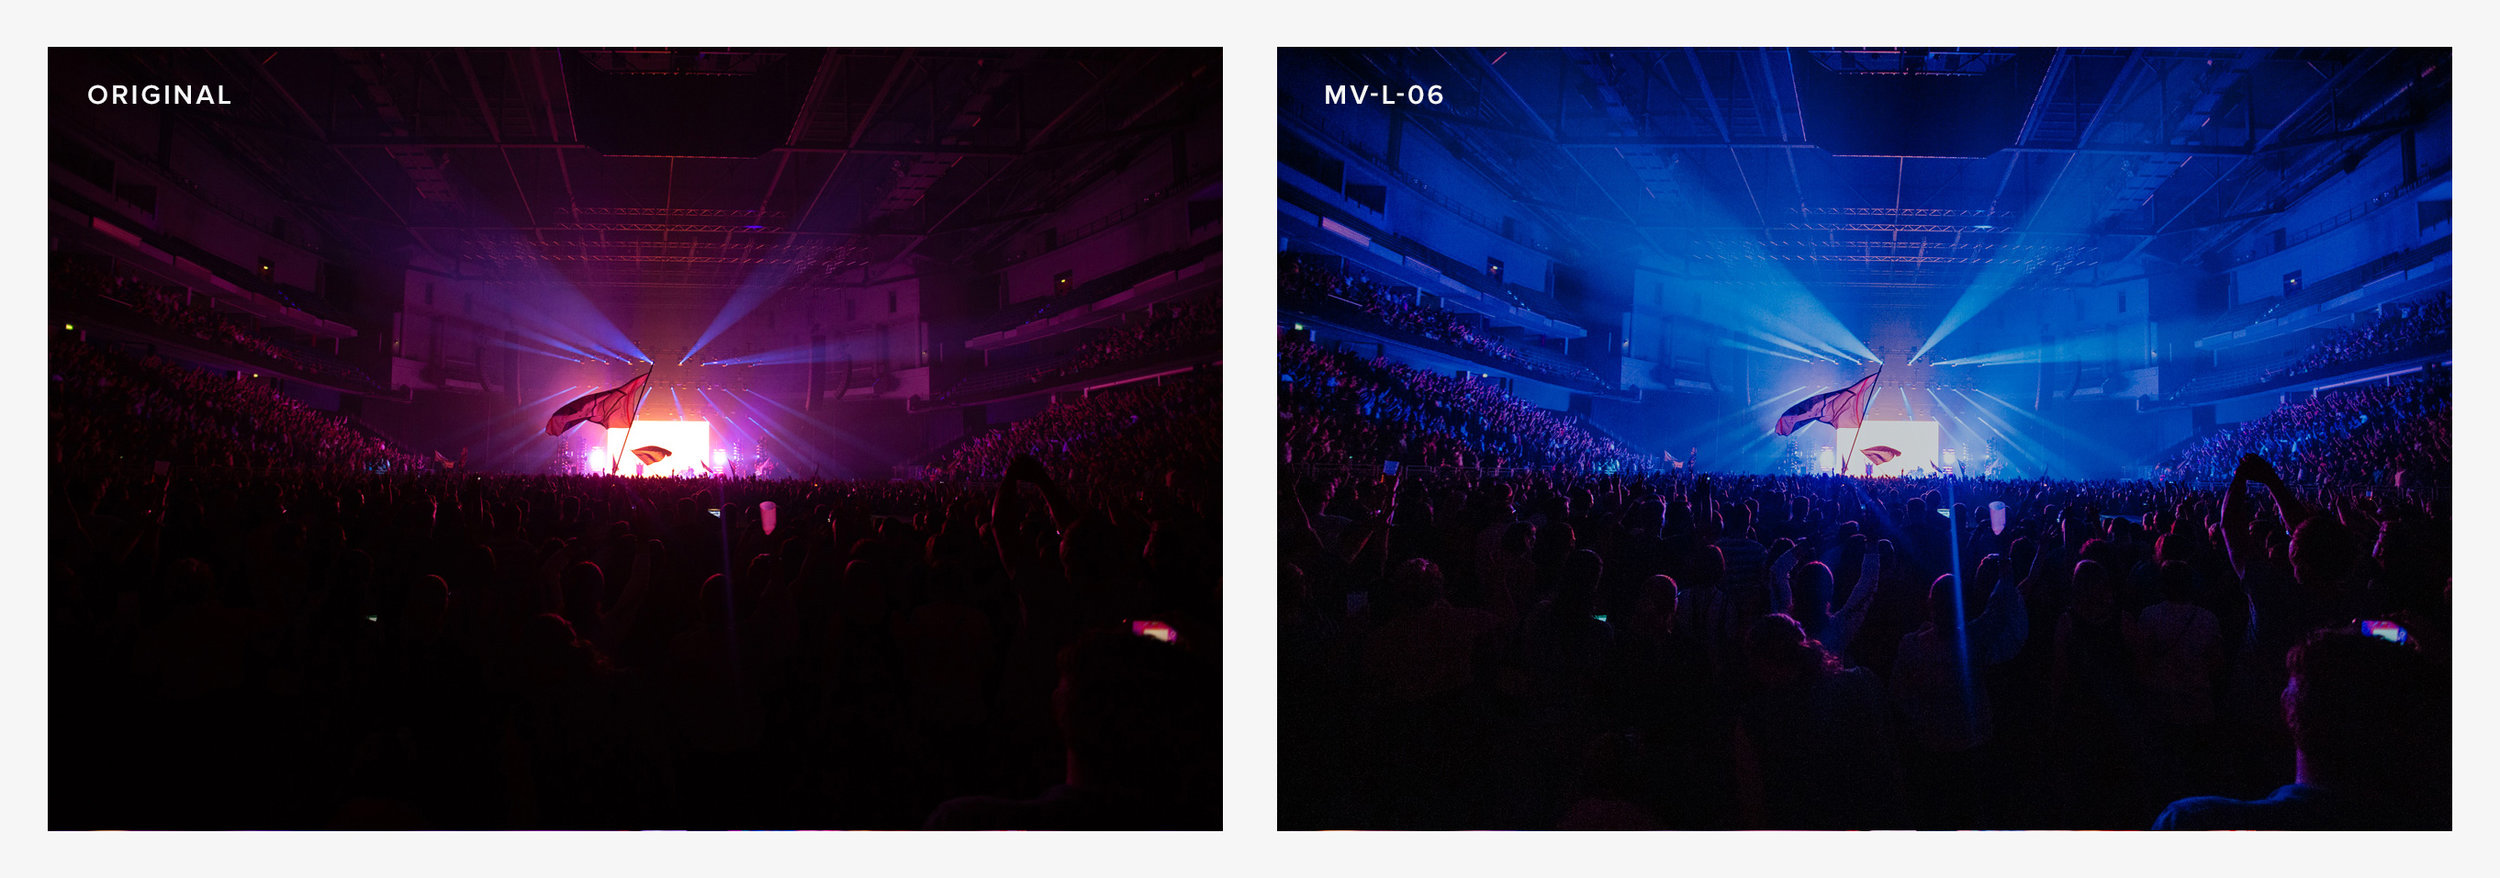 MV-L-06 — Before & After